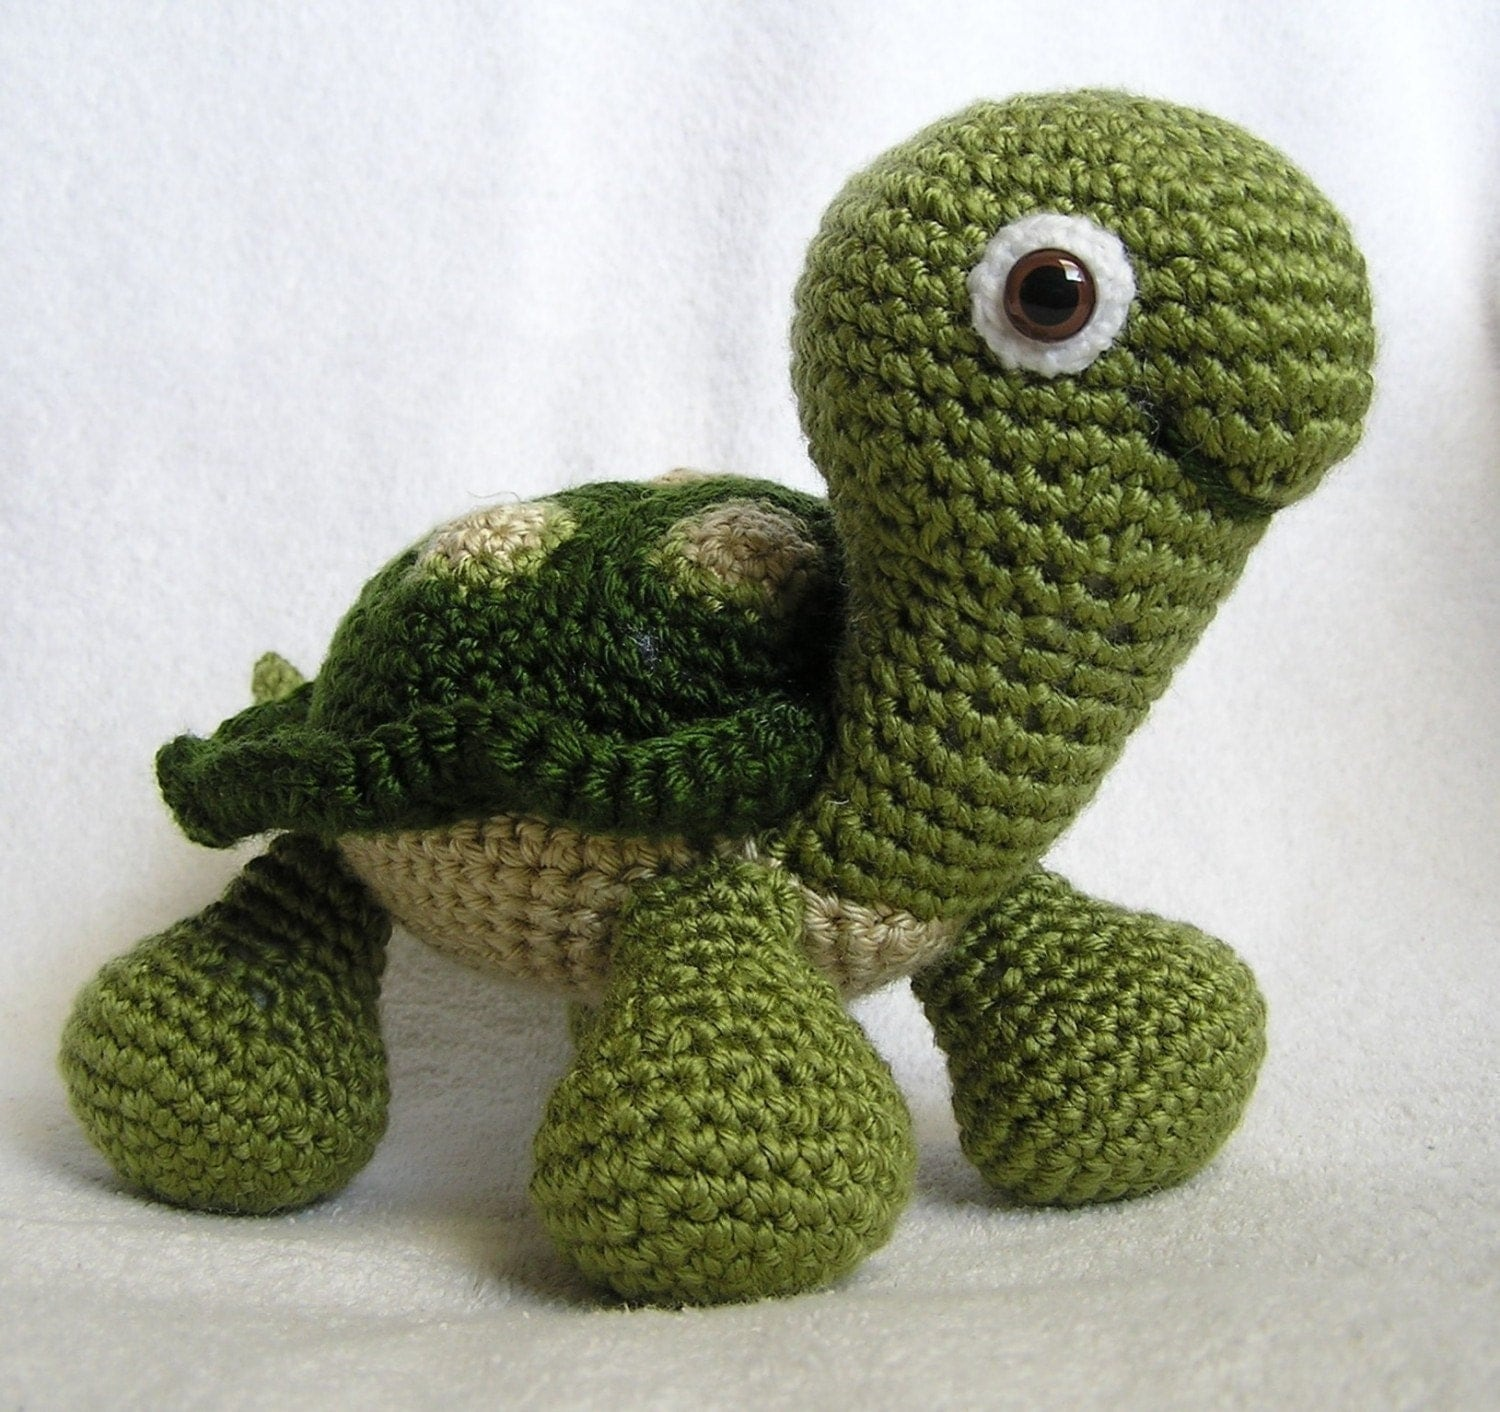 Crochet Patterns Turtle : BABY TURTLE PDF Crochet Pattern by bvoe668 on Etsy